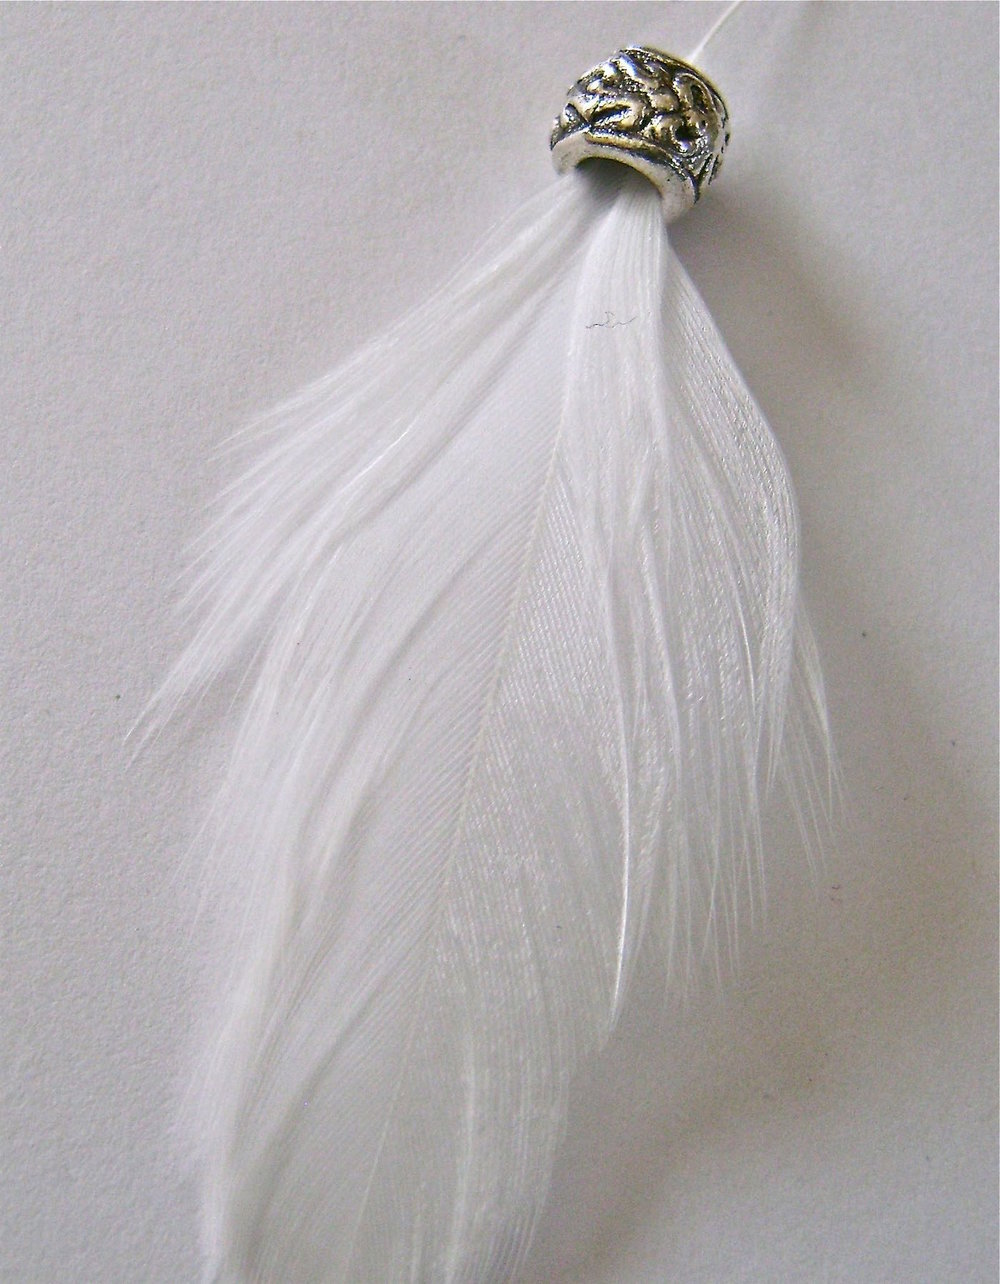 step 4 - Pass the feather's quill through a decorative silver spacer and then into a 10mm pearl.  Push the wire stem up into the spacer and through the pearl with the feather draped across the front side of the wings.